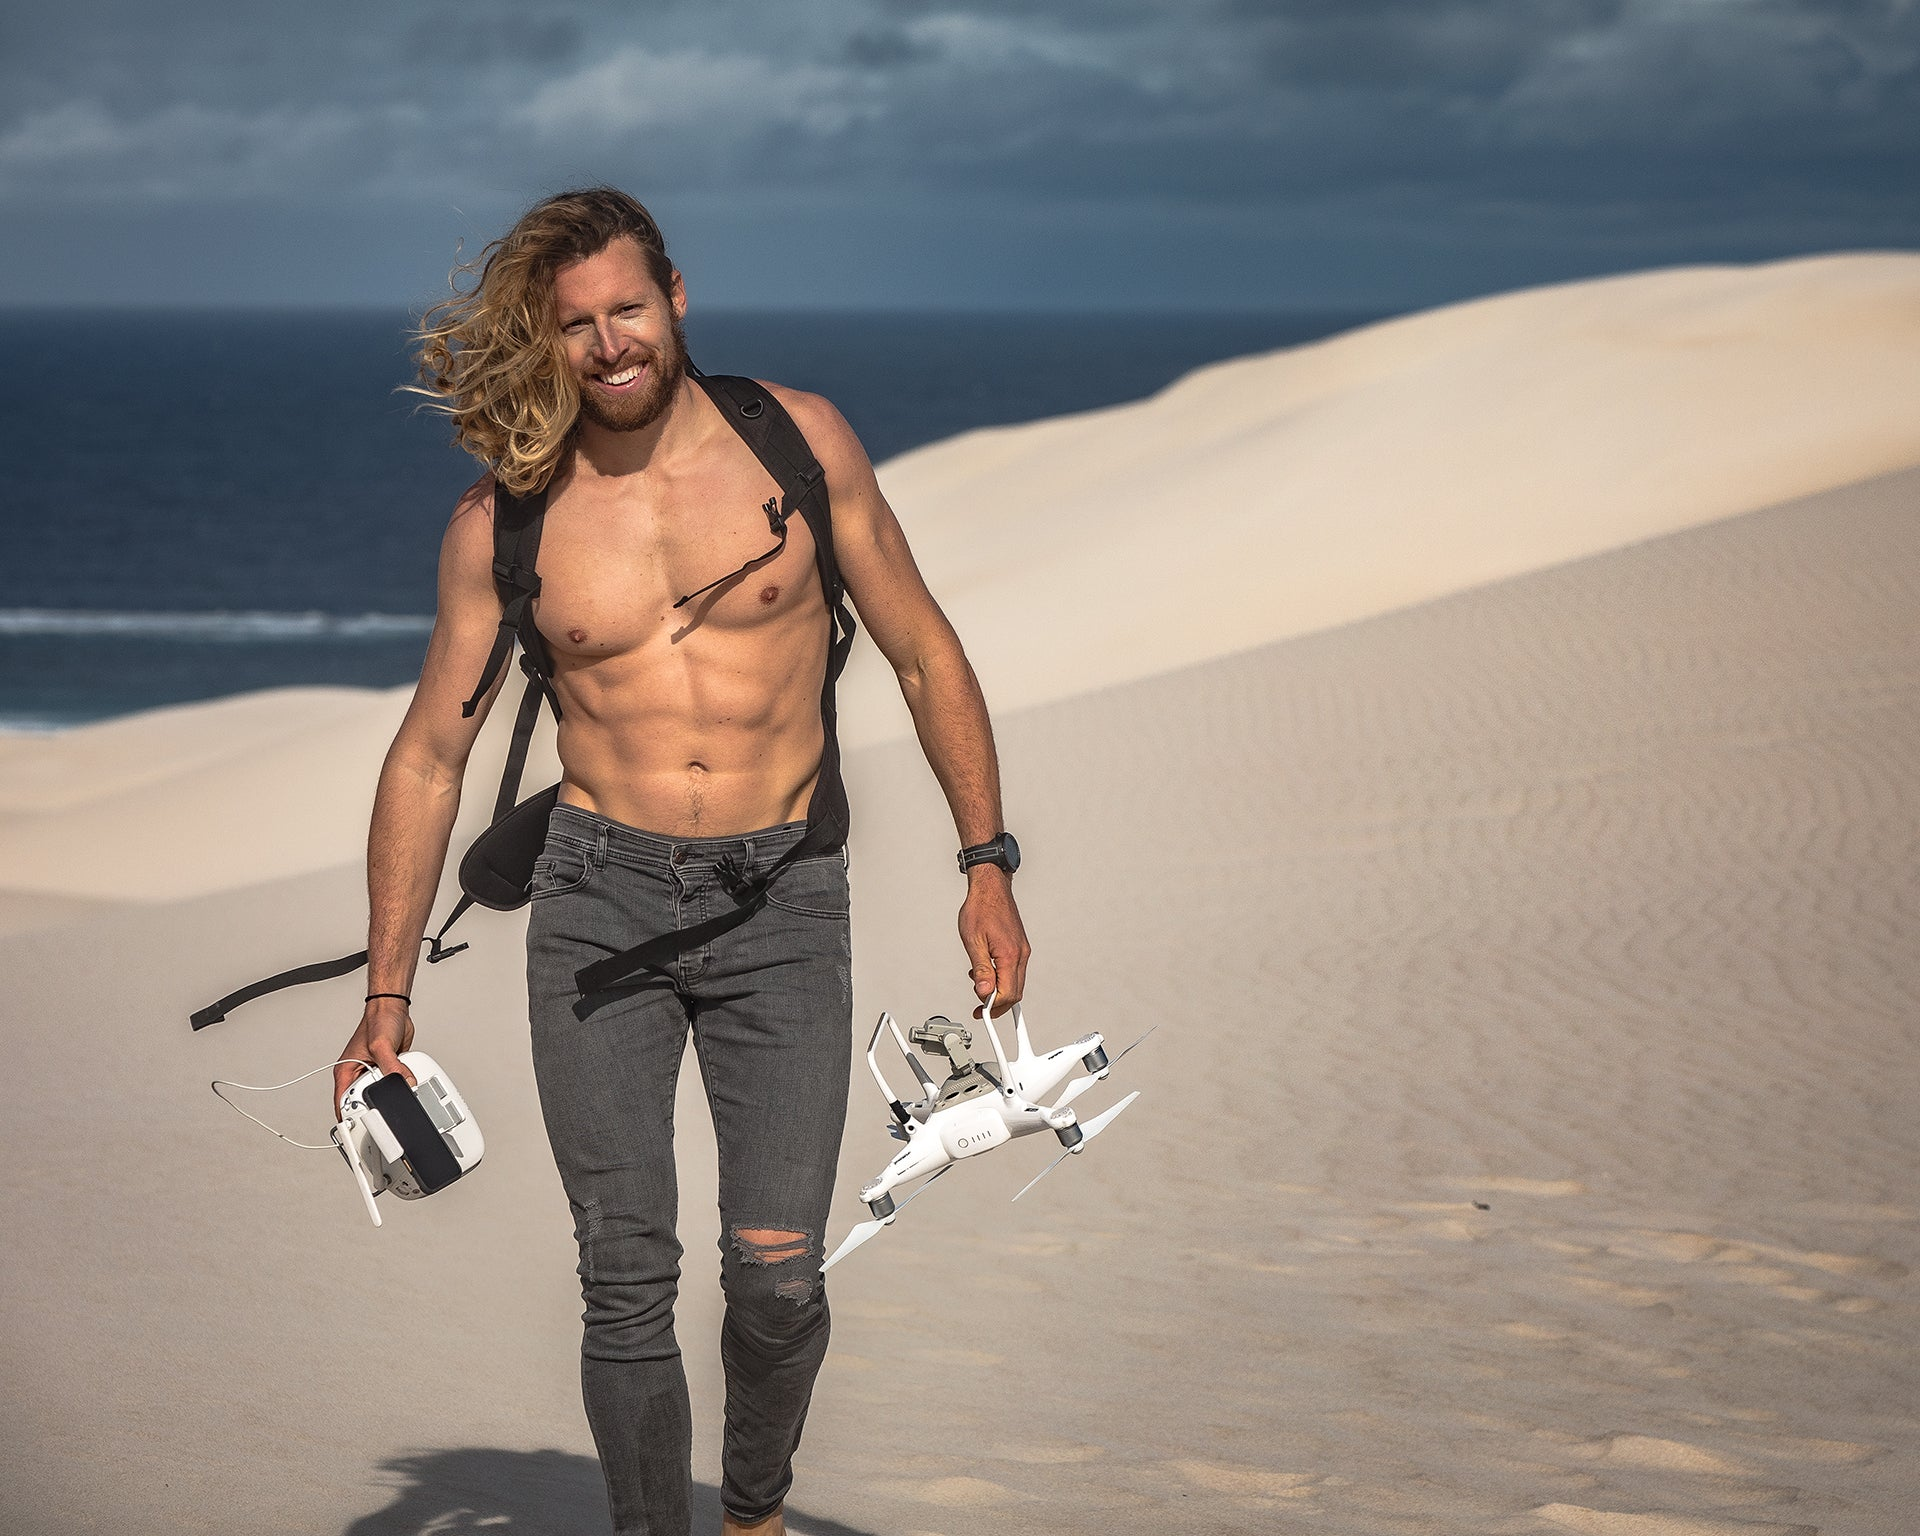 Phil Thurston walking through the desert with a DJI drone collecting photographs